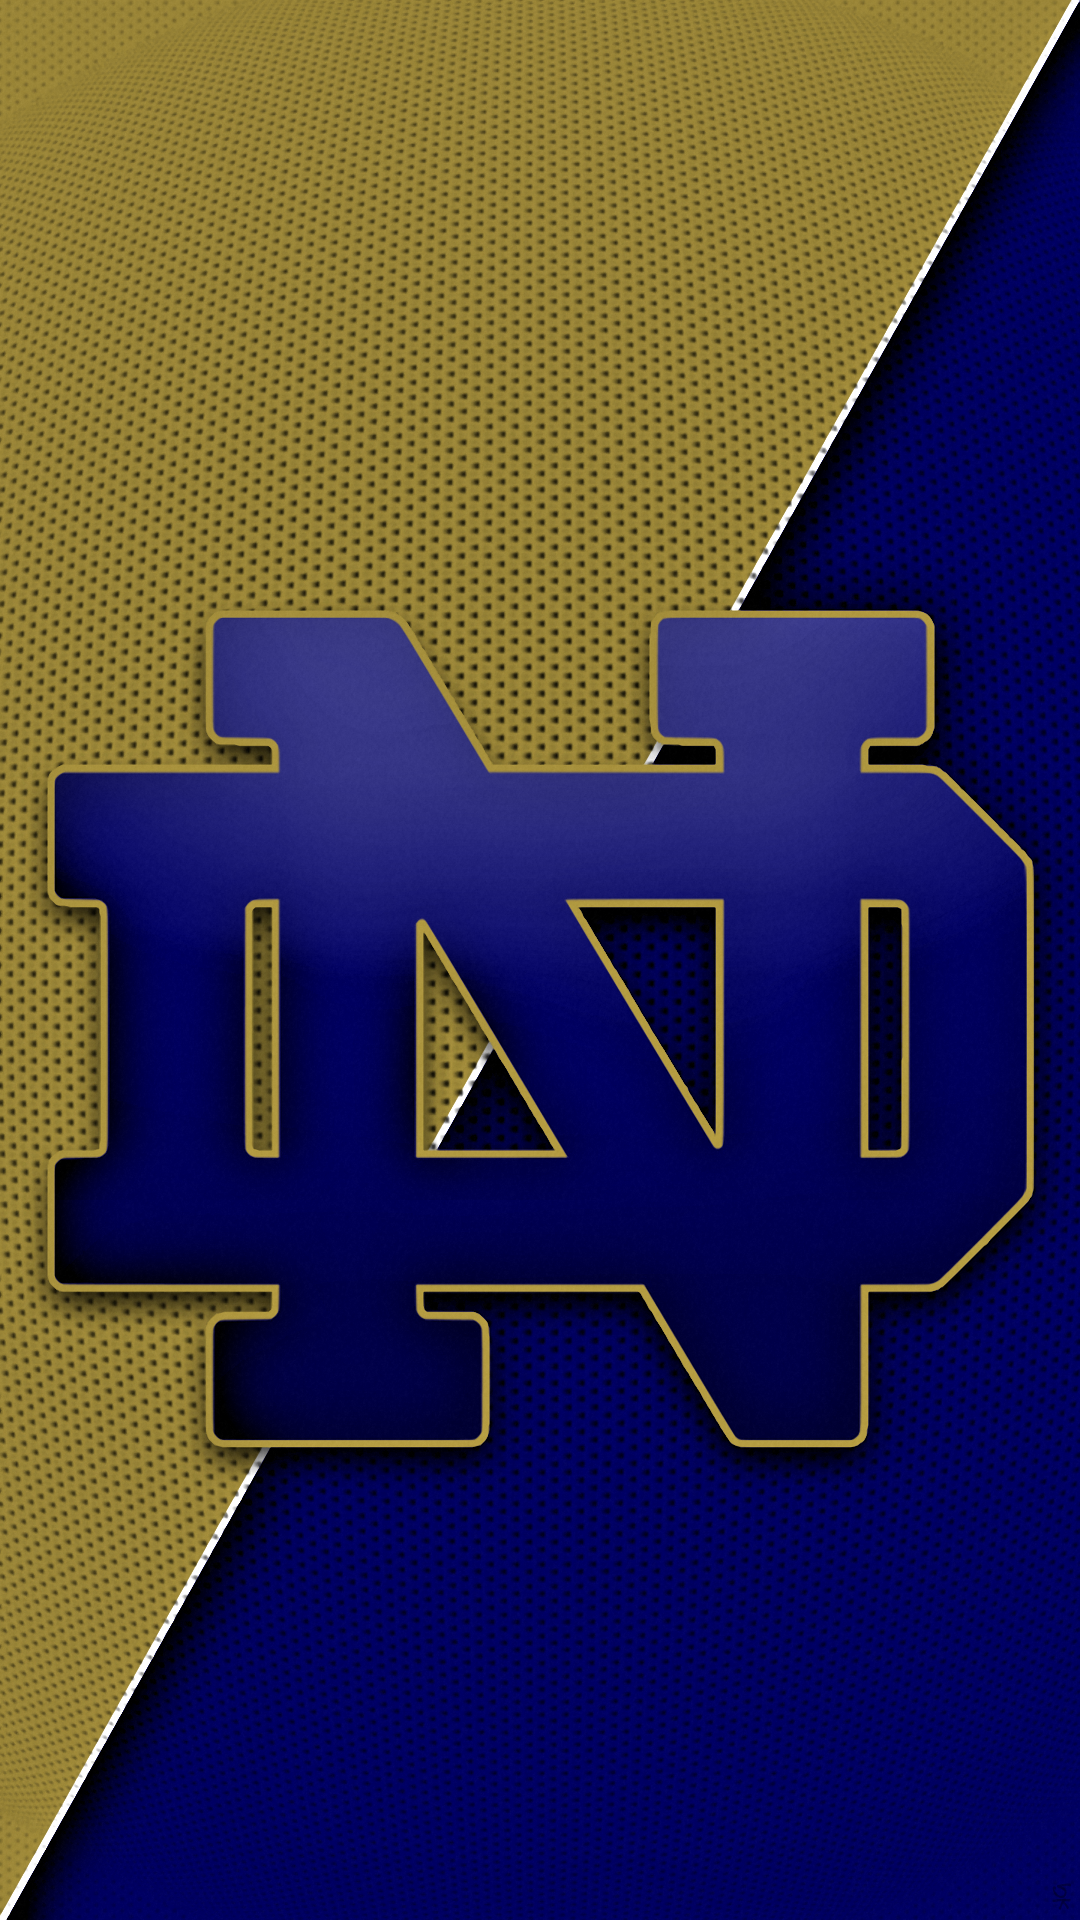 Notre Dame Wallpapers Good Backgrounds Notre Dame Hd Widescreen Fighting Irish Logo Notre Dame Wallpaper Notre Dame Fighting Irish